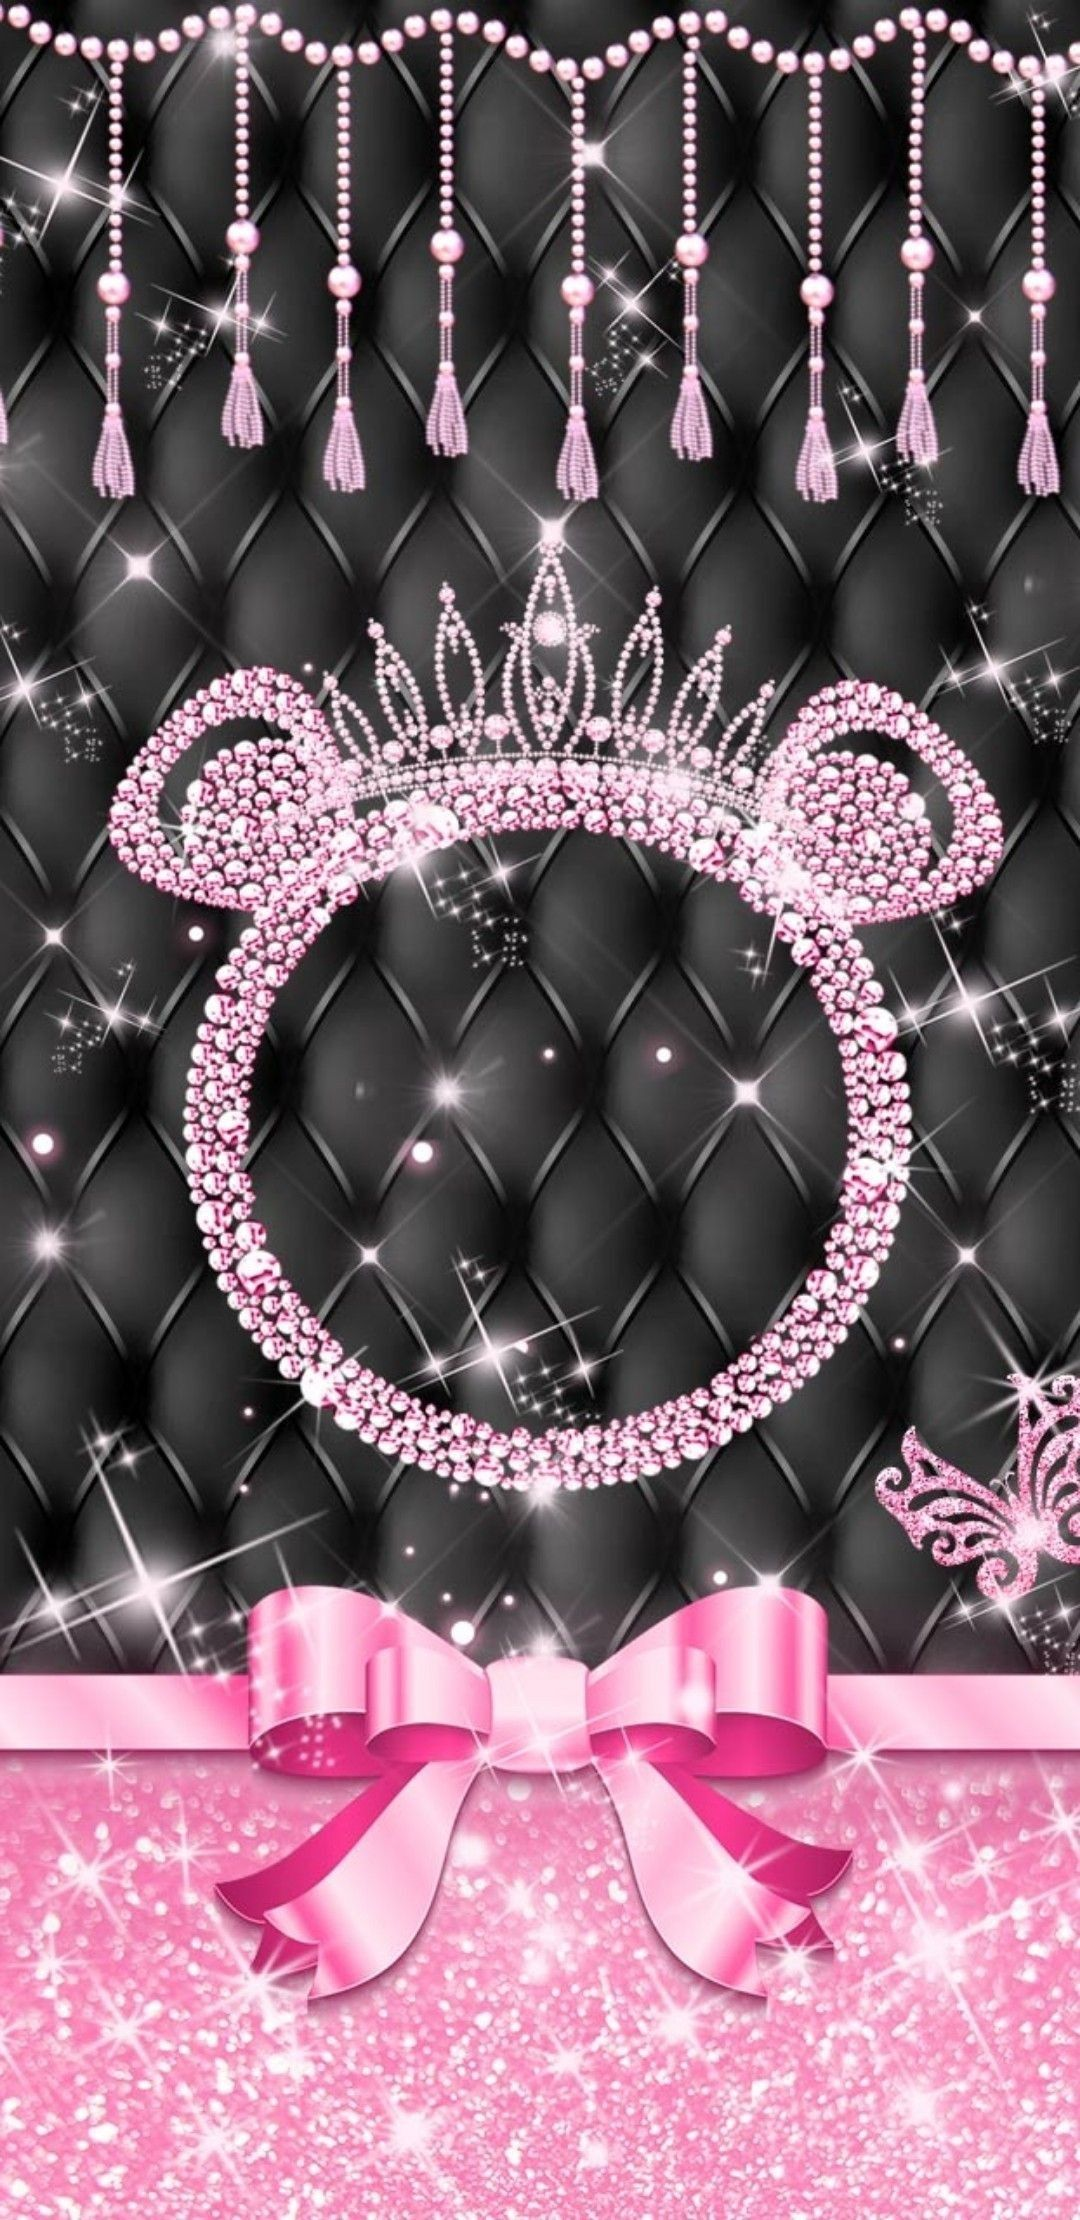 Pin by Andy on 女性中性主题 Bling wallpaper, Pinky wallpaper